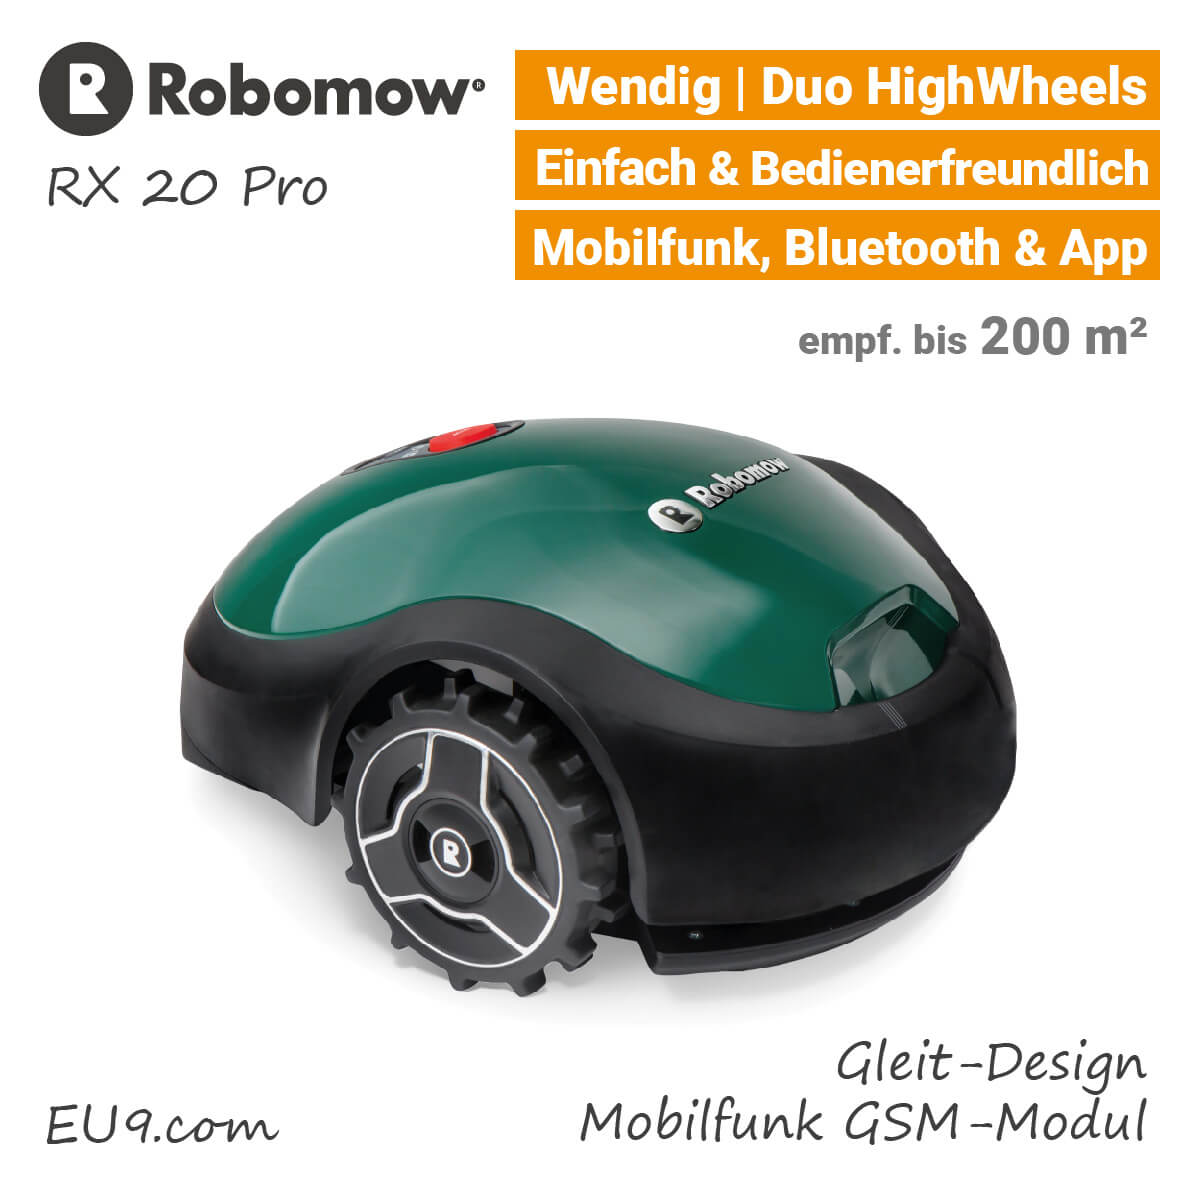 robomow rx 20 pro m hroboter mit mobilfunk g nstig bei eu9 kaufen. Black Bedroom Furniture Sets. Home Design Ideas